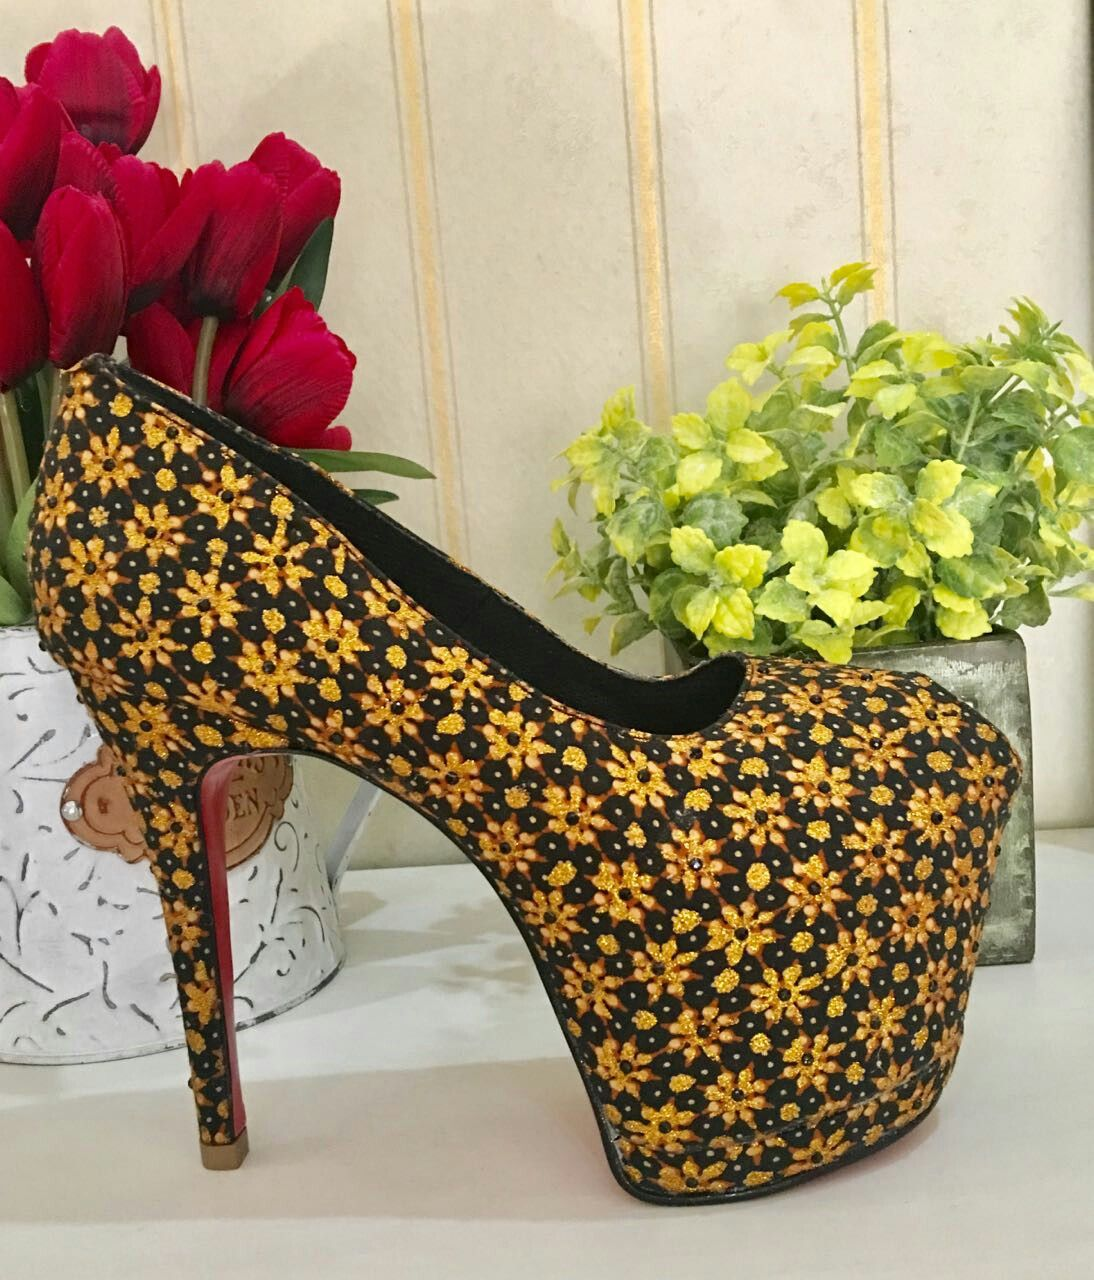 Batik Shoes By ALITA DESIGN From Jakarta Indonesia